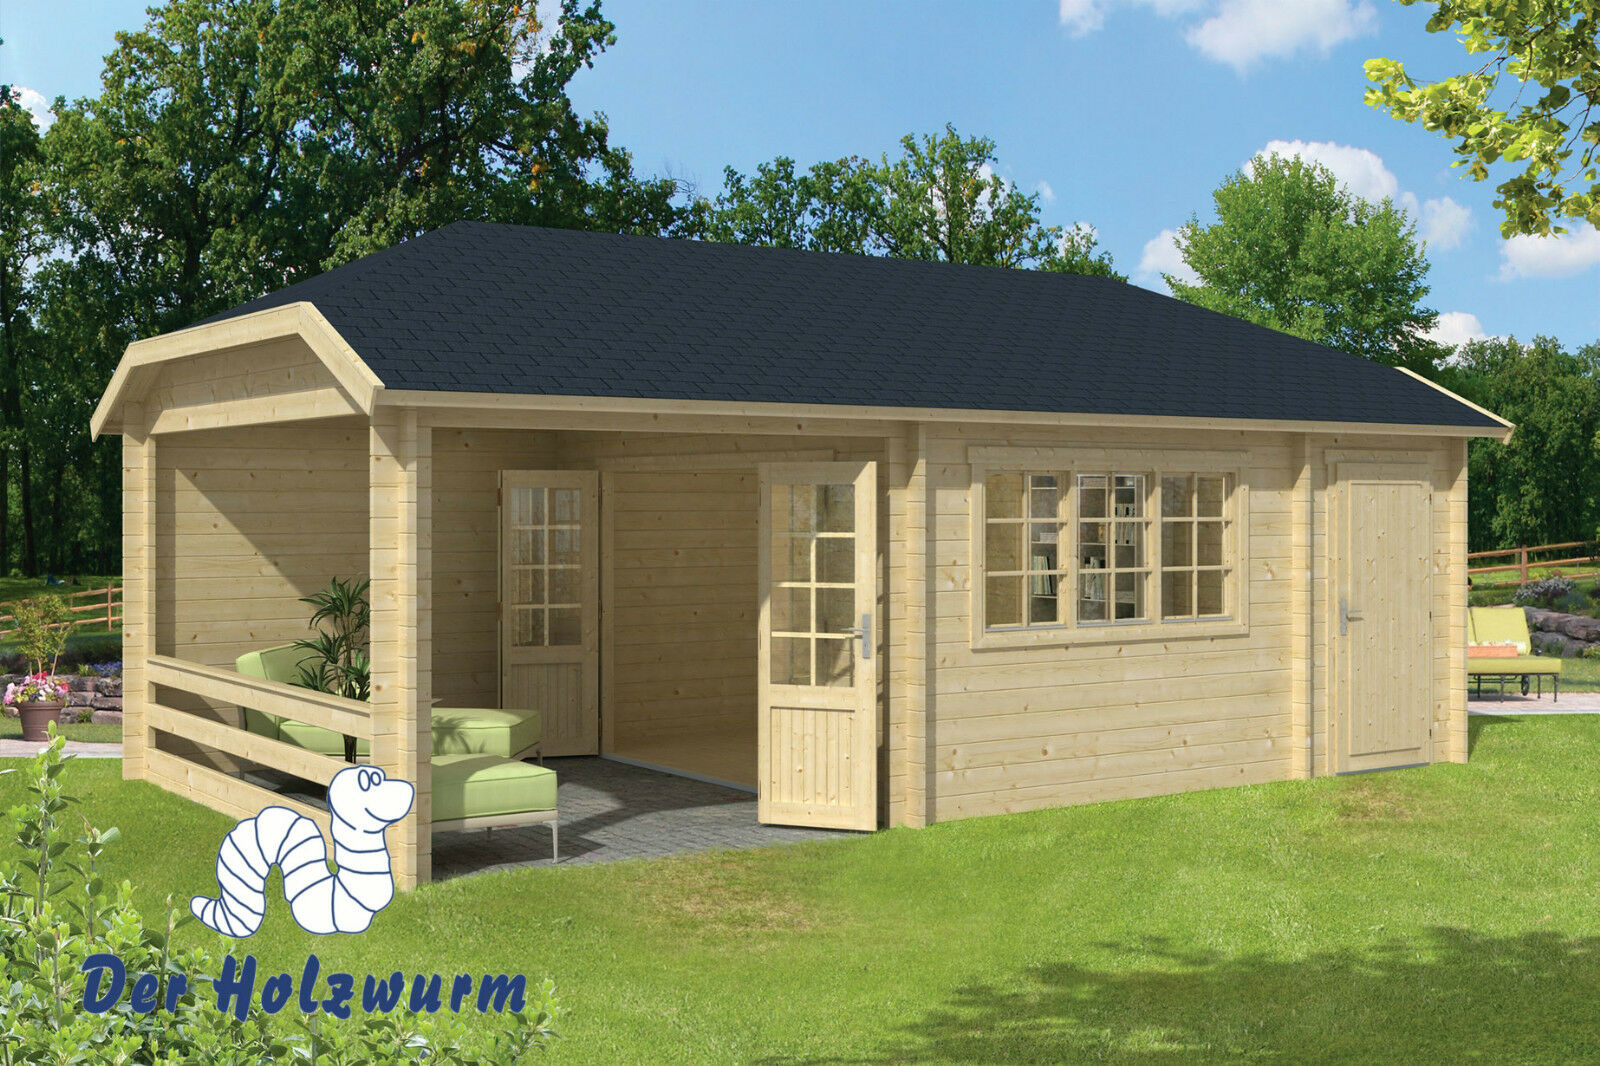 gartenhaus viveka blockhaus 750x420cm holzhaus 45mm anbauschuppen terrasse holz ebay. Black Bedroom Furniture Sets. Home Design Ideas